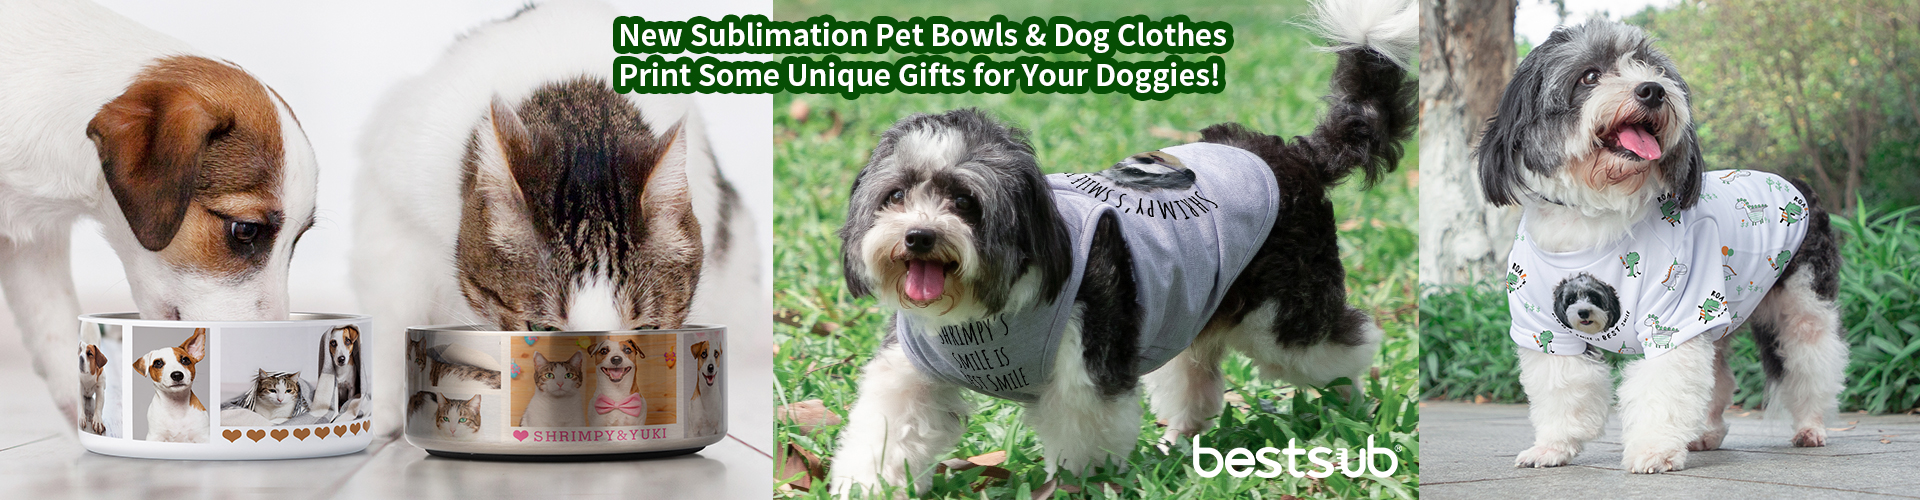 2021-05-10_New_Sublimation_Dog_Clothes_Pet_Bowls_new_web